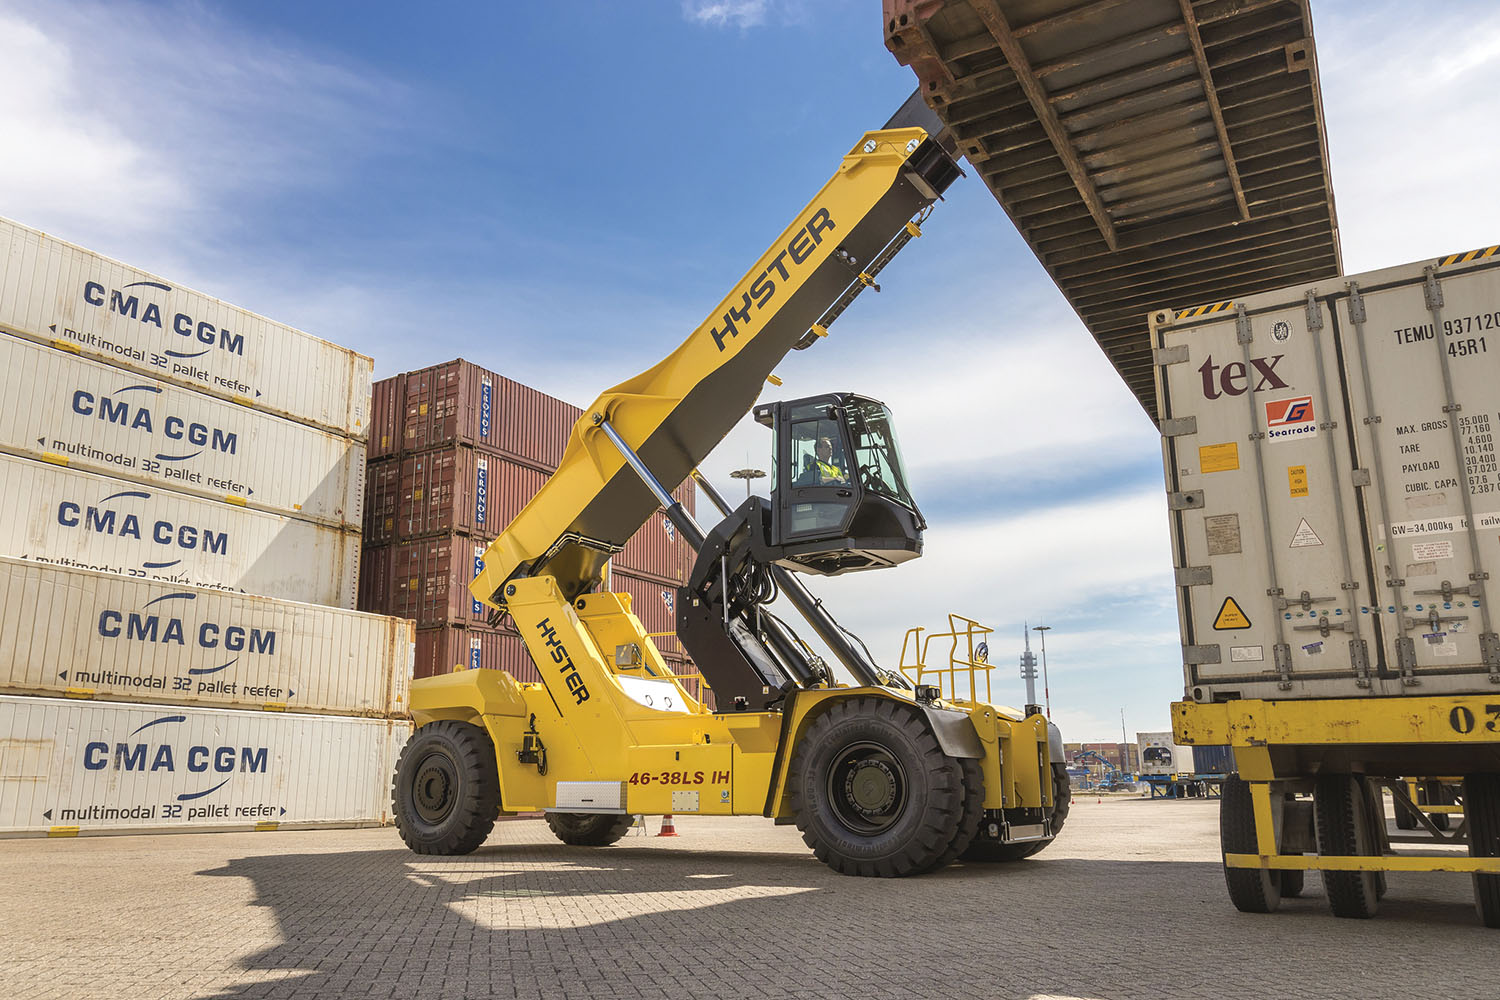 The elevating cab securely lifts the operator cabin for greater visibility while moving containers or general cargo.